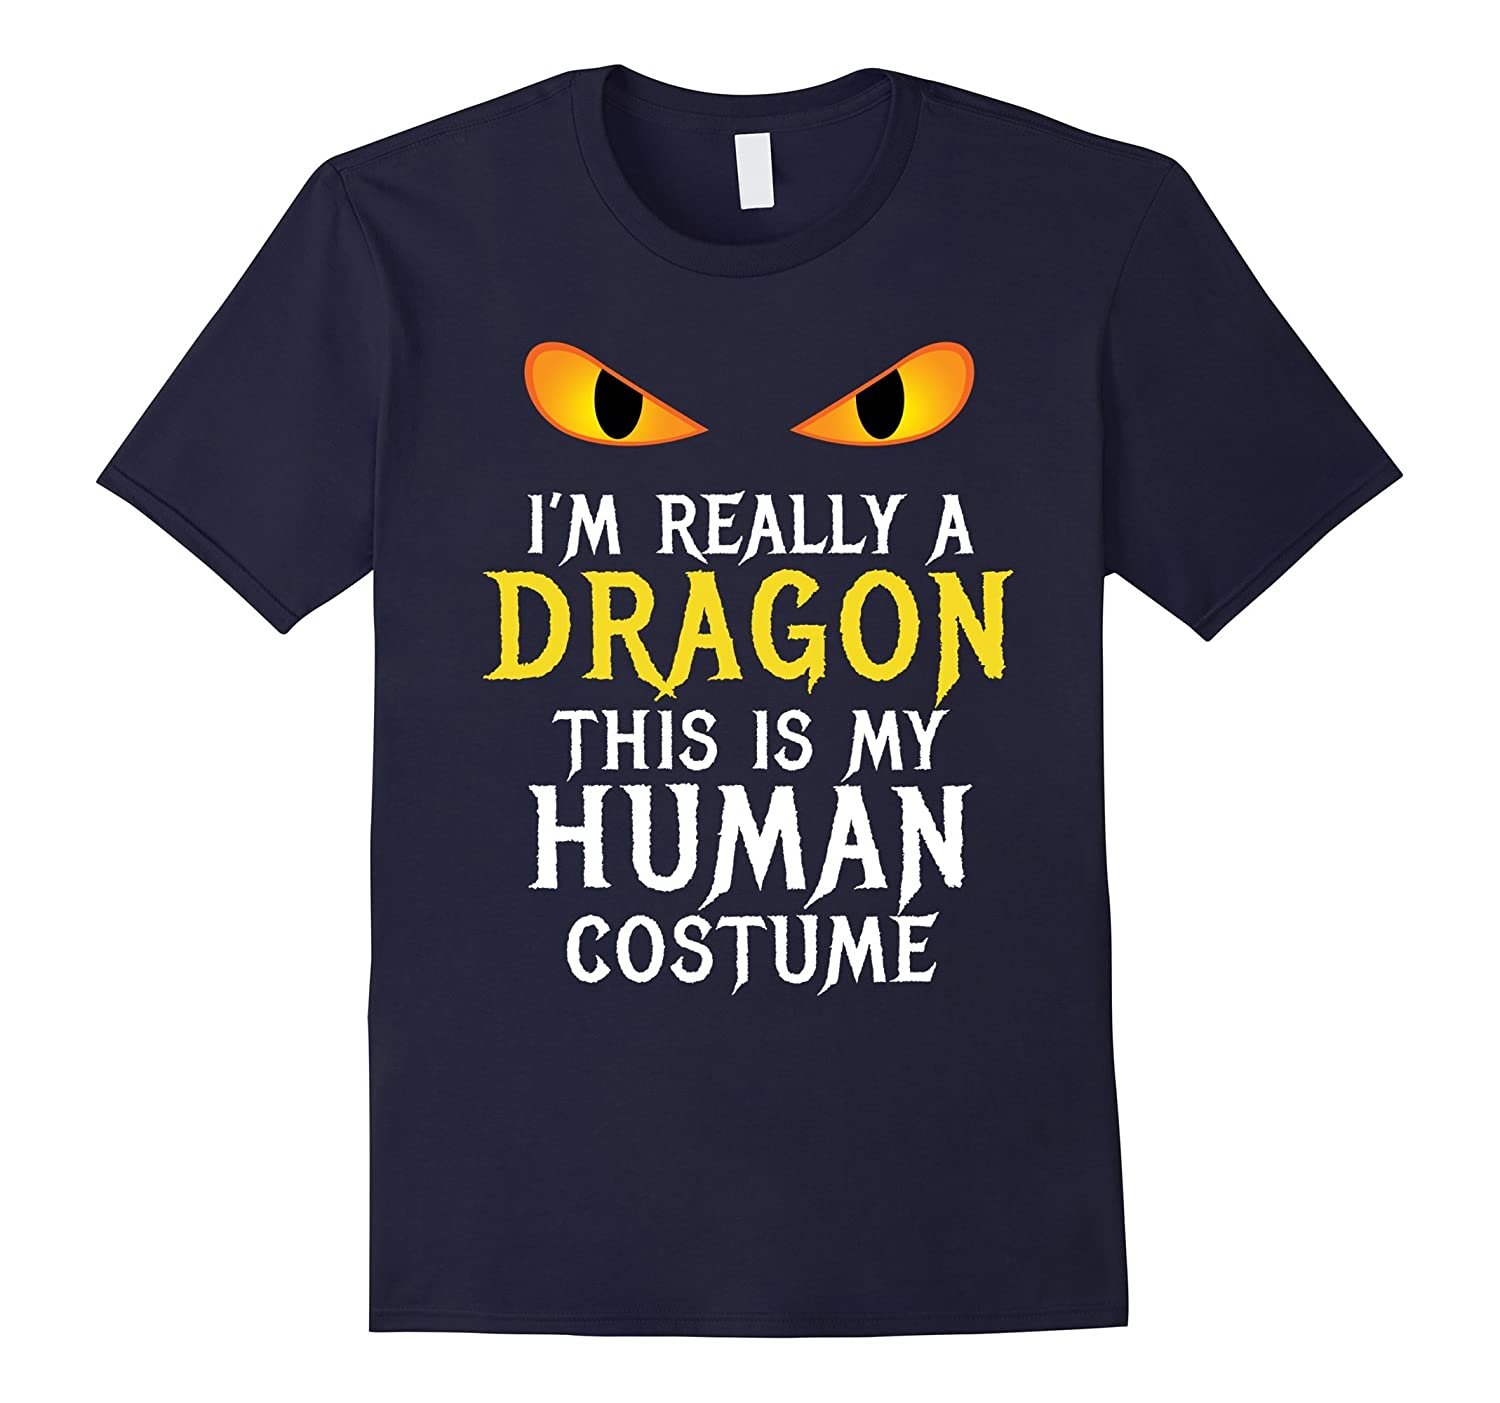 Best Selling T Shirts